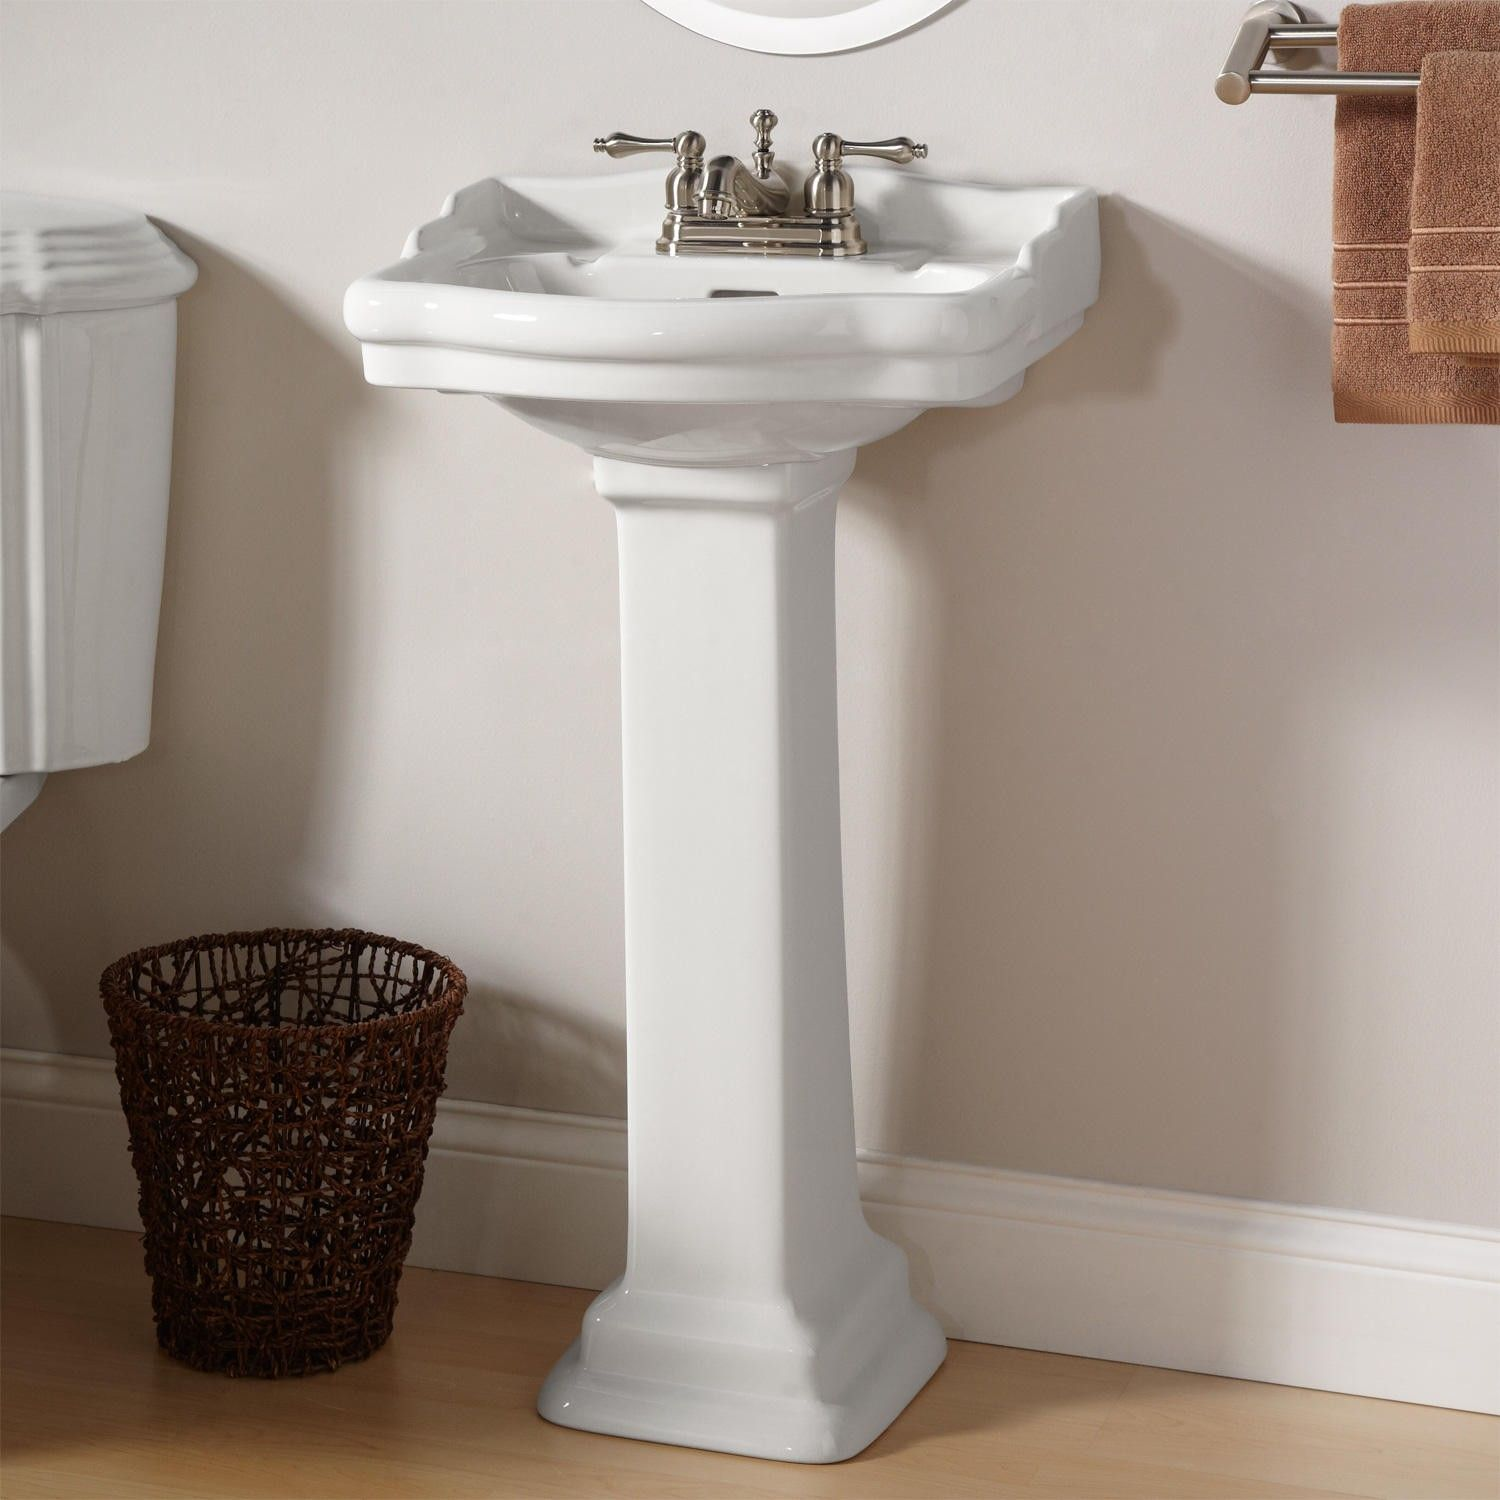 stanford mini pedestal sink the bathroom in our tiny house is really tiny this